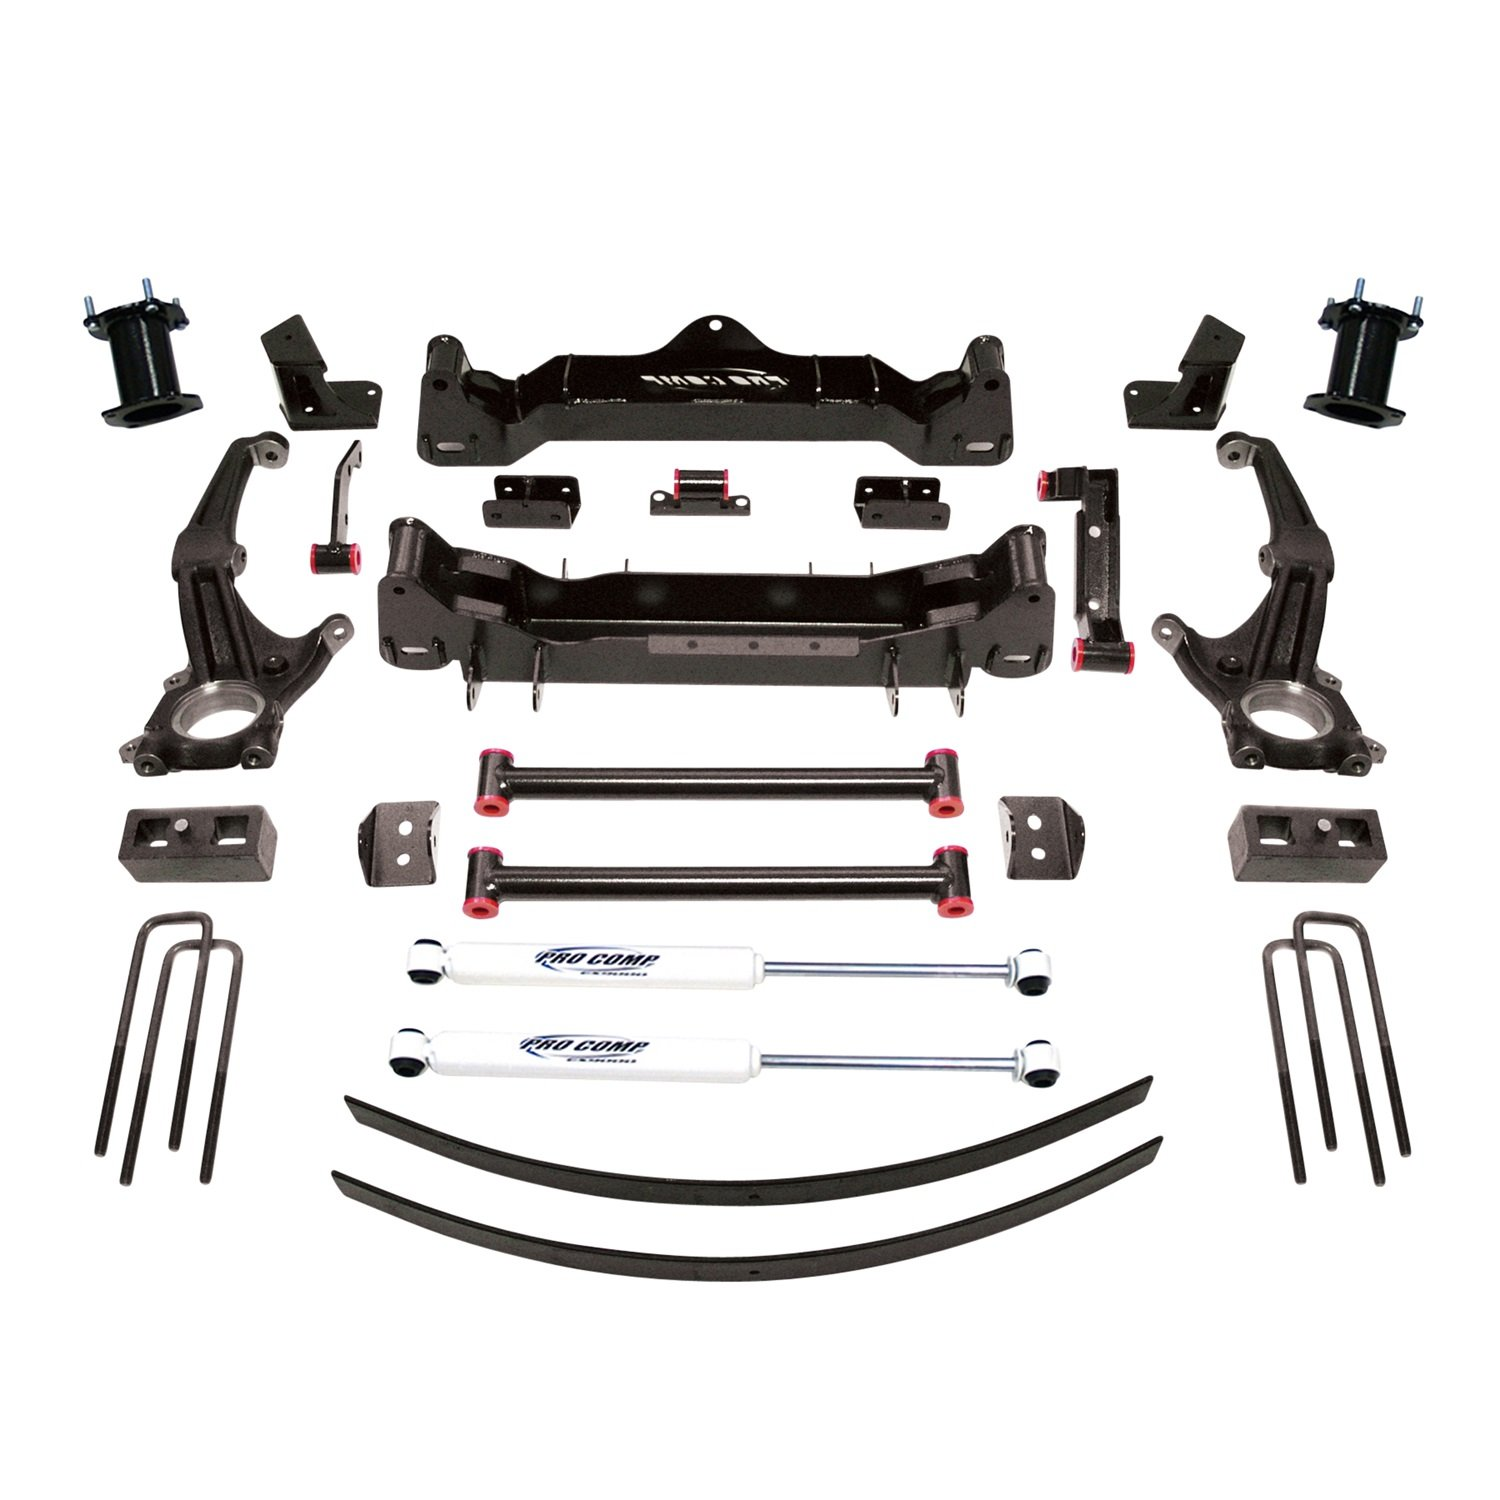 Pro Comp Suspension K5080B Stage I Lift Kit 6 in. Lift Incl. Knuckle Block Front And Rear ES9000 Stage I Lift Kit